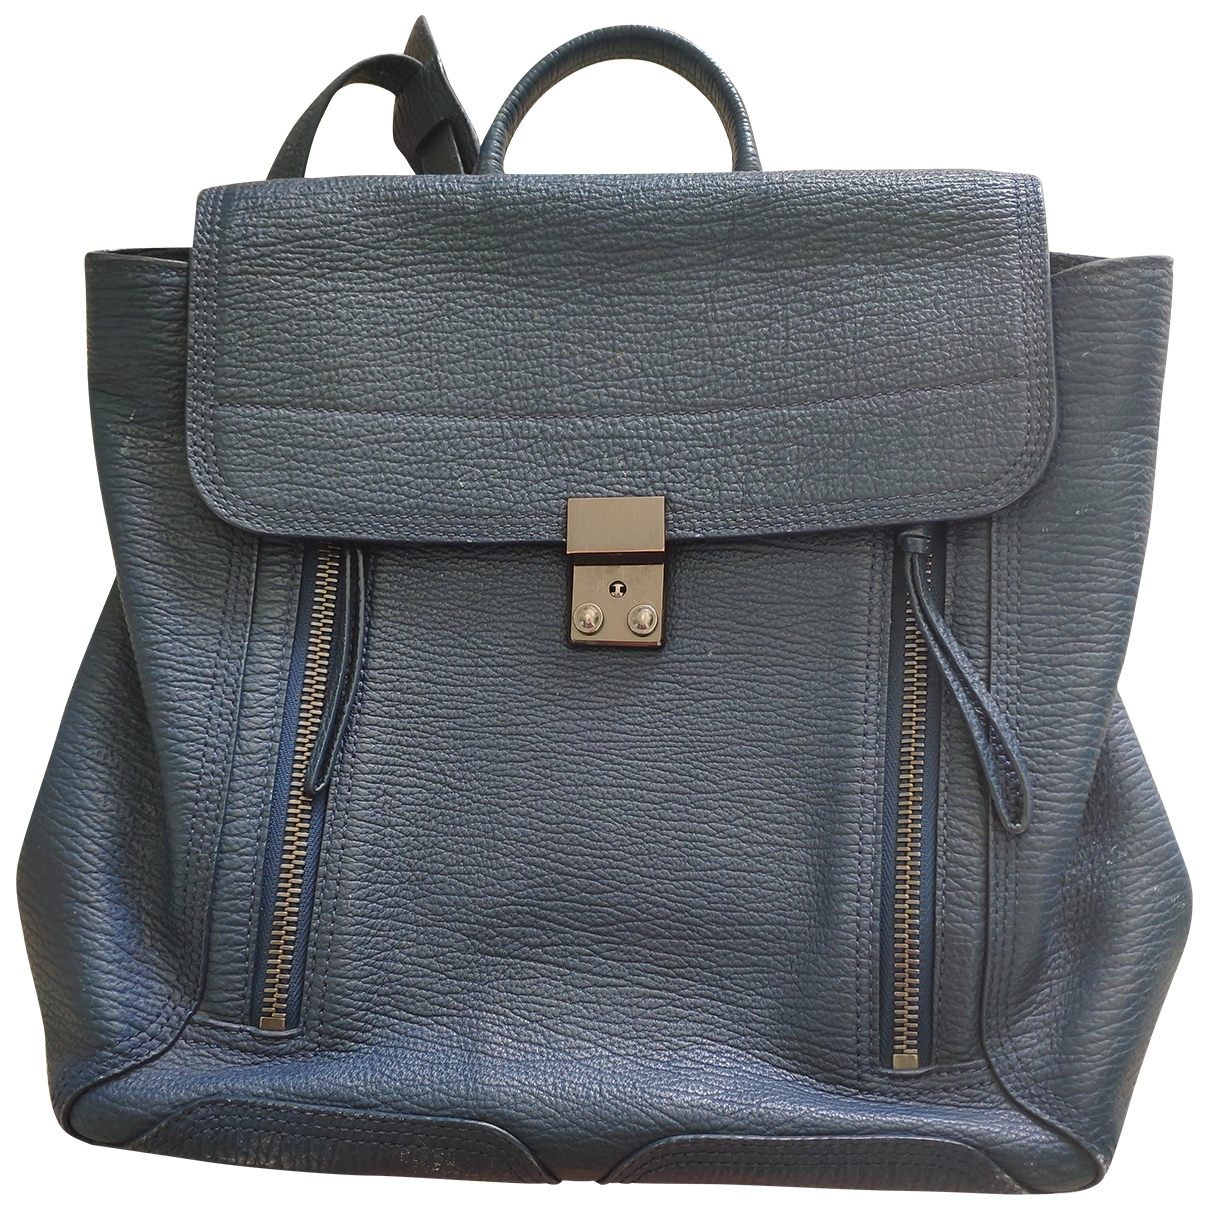 3.1 Phillip Lim \N Rucksaecke in  Blau Fell